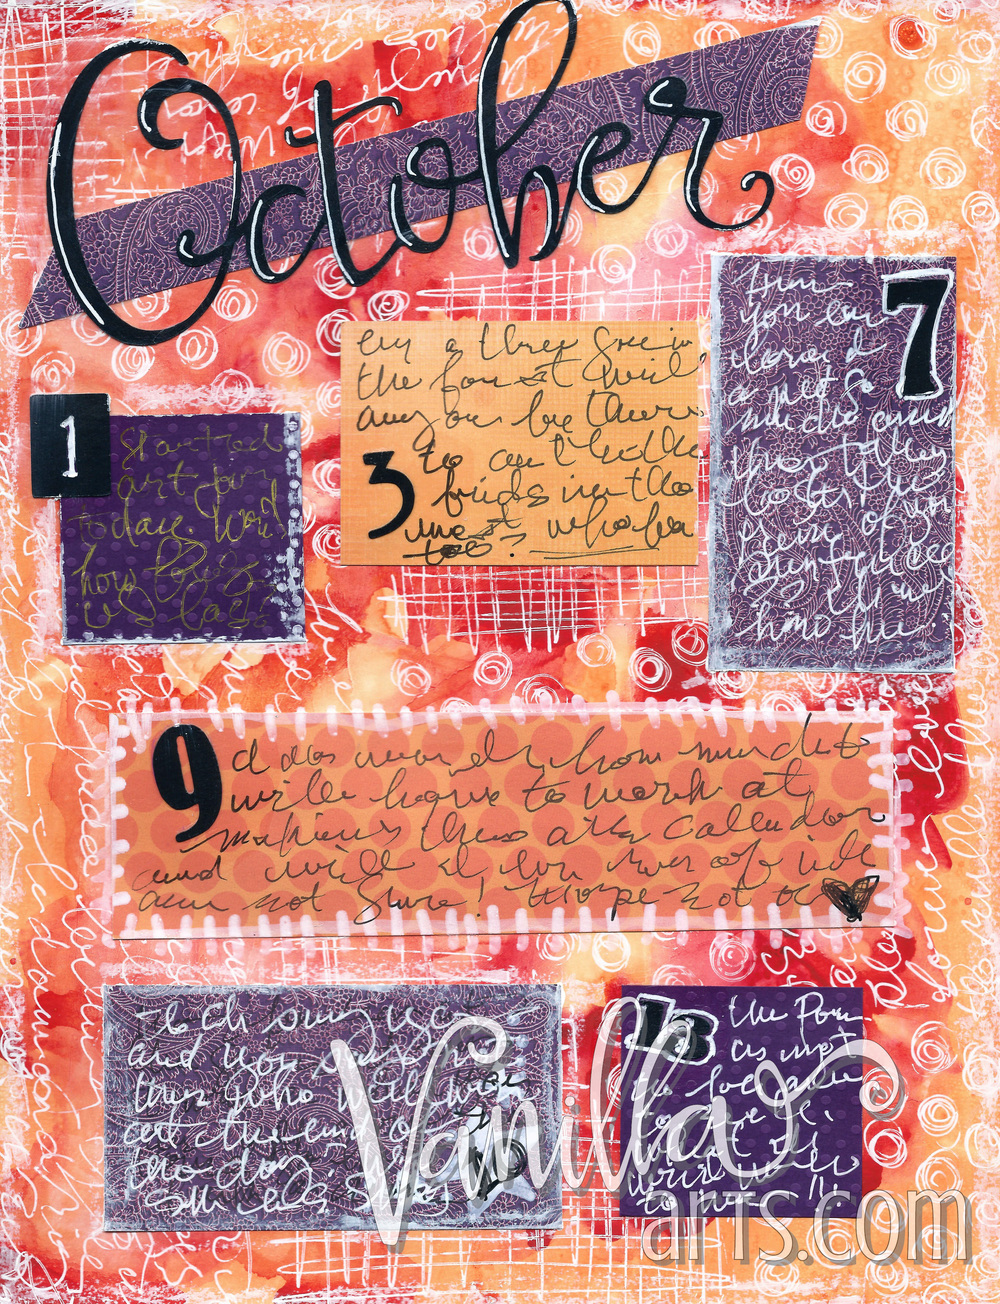 Caledare! beginning art journal lessons for crafters | VanillaArts.com